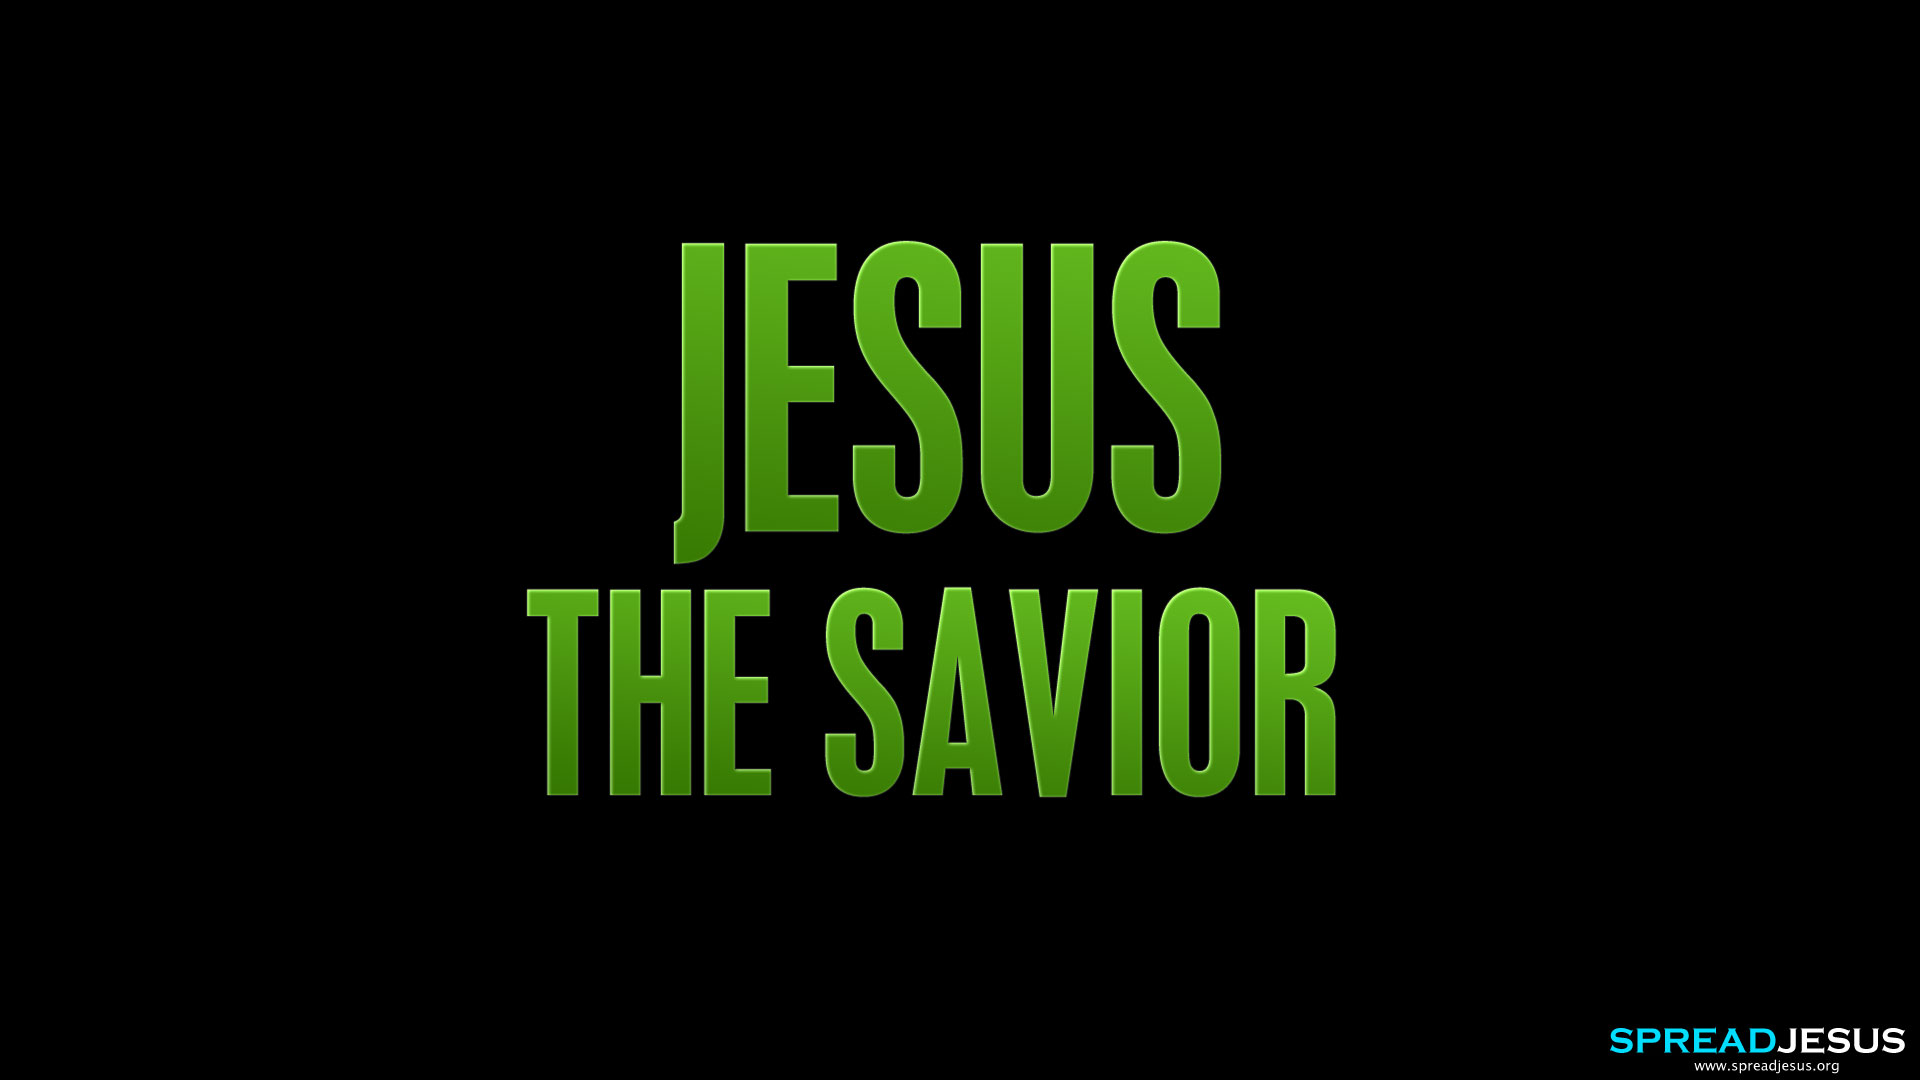 Jesus Christ HD wallpapers free download:Jesus The Savior Jesus Christ HD wallpaper 3 free download:Jesus christ Backgrounds ,christian backgrounds wallpapers HD